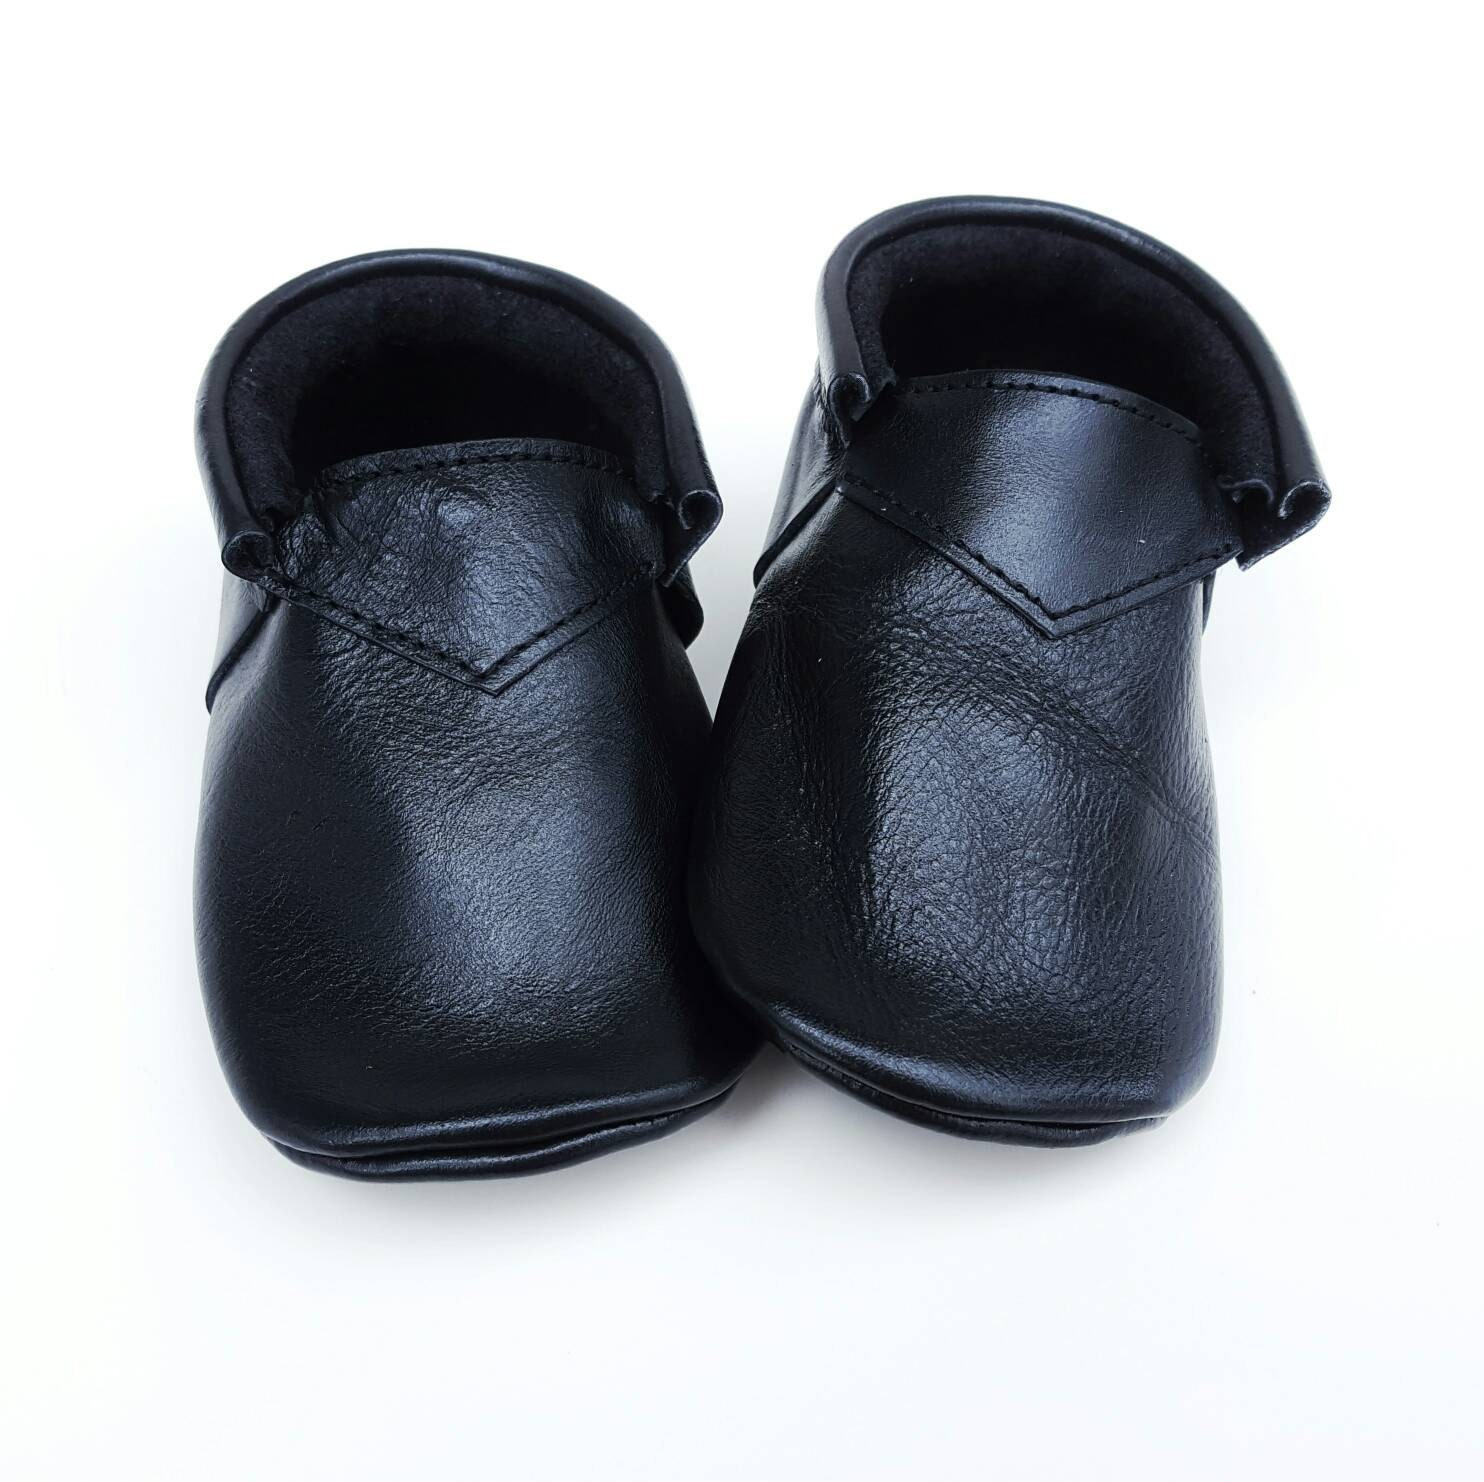 Black boho Loafers baby shoes baby moccs moccs moccasins